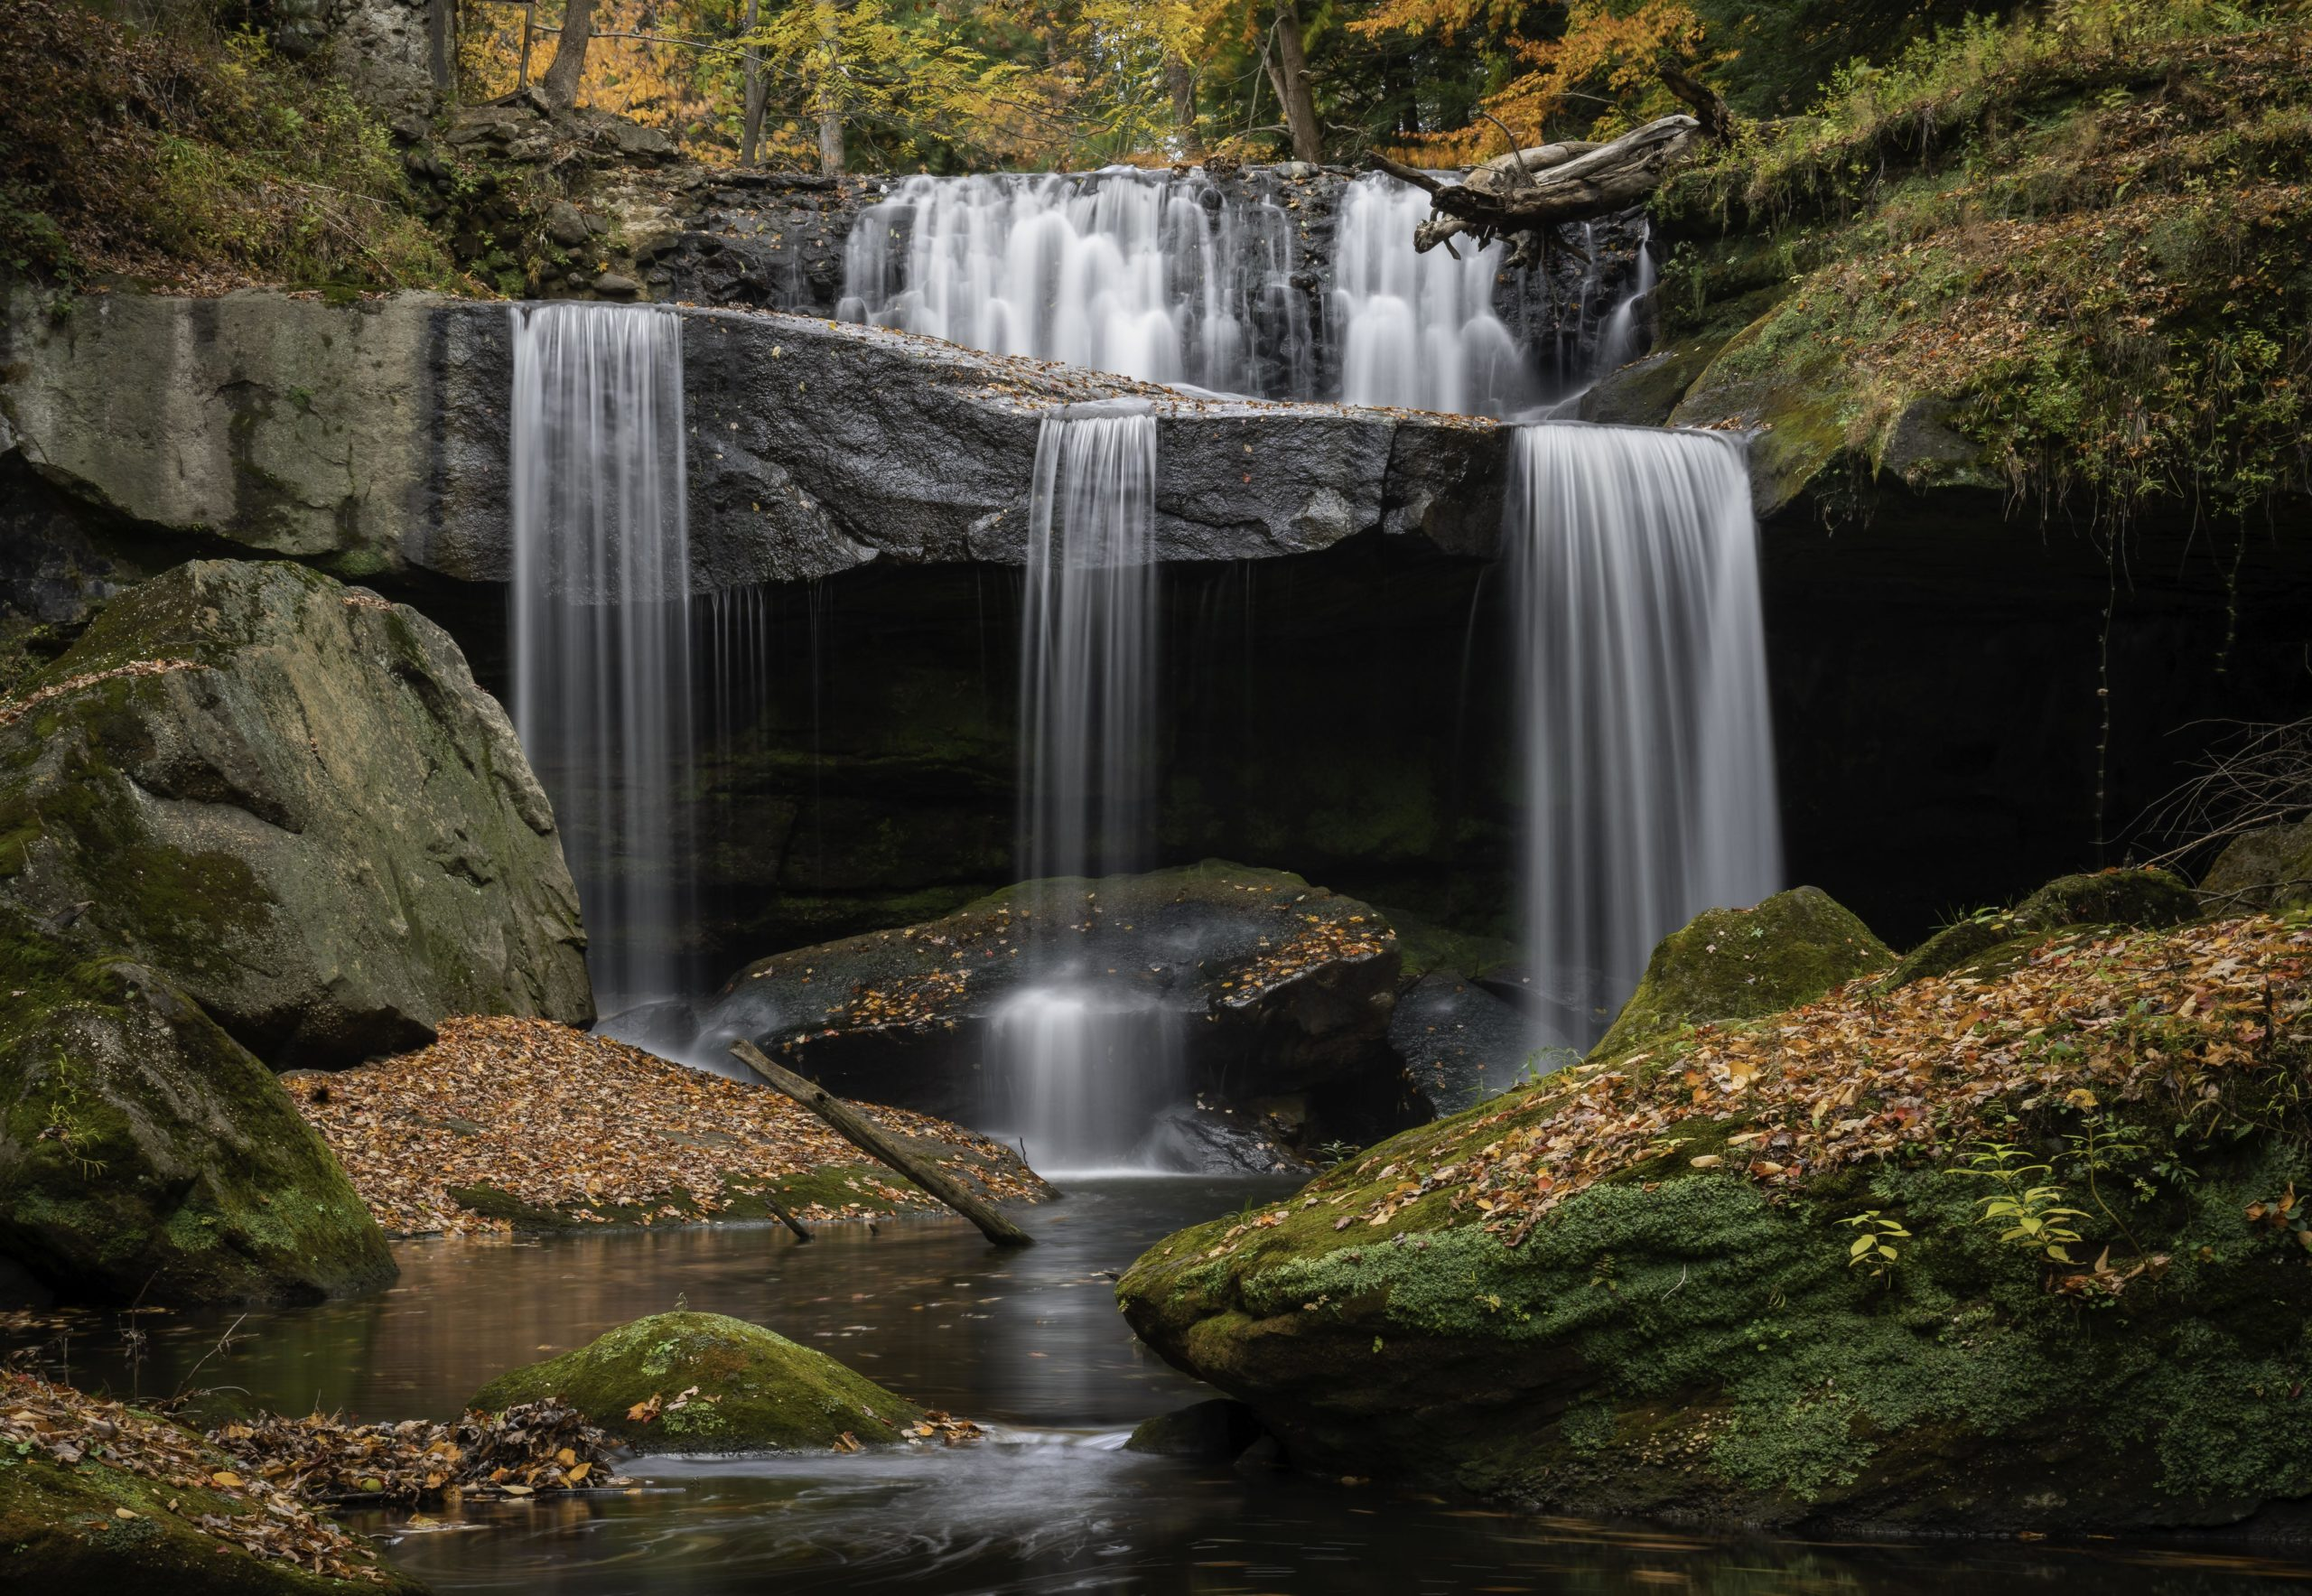 One of the many beautiful Falls throughout the state Ohio